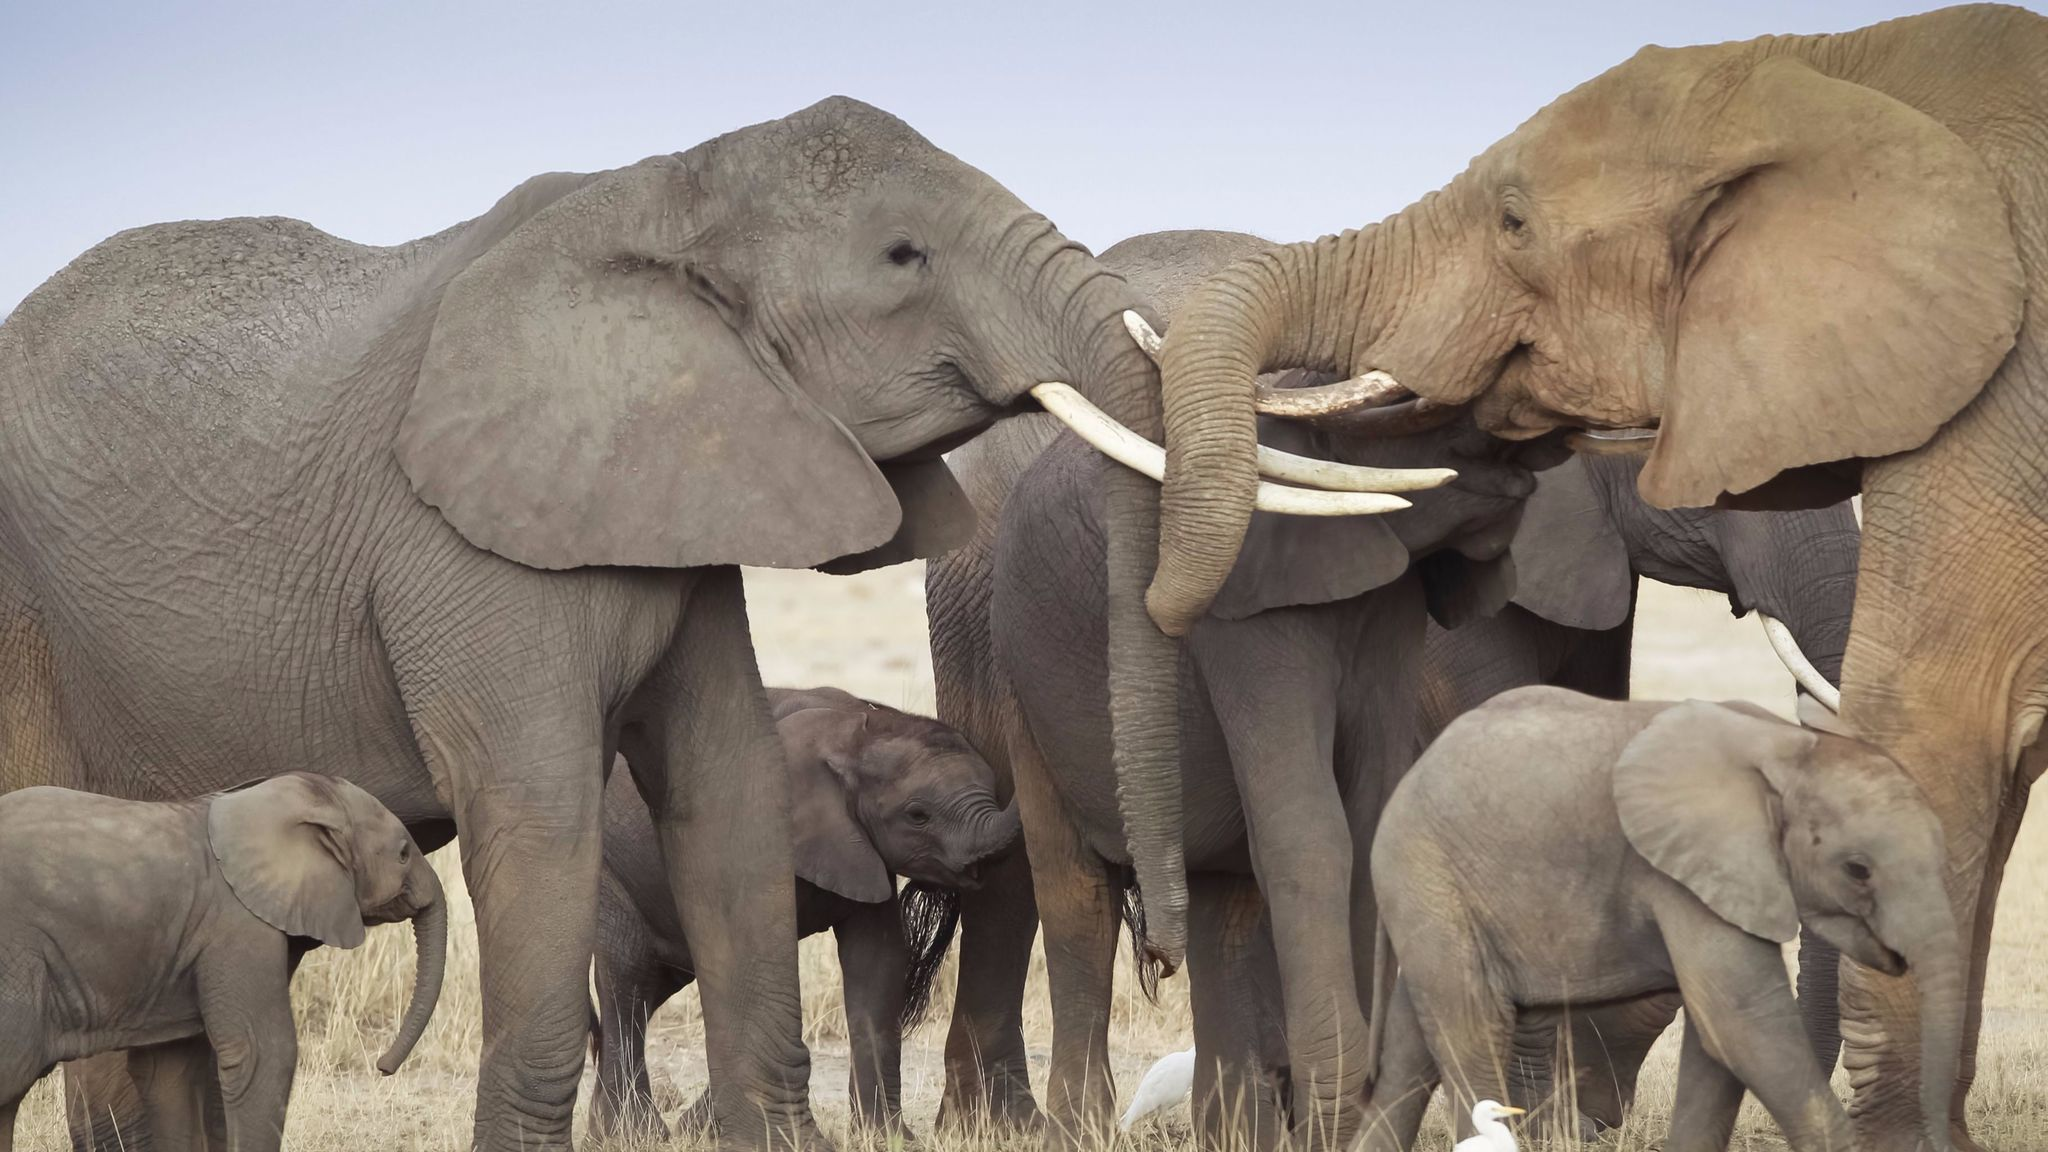 Why would any decent person want to kill an elephant?